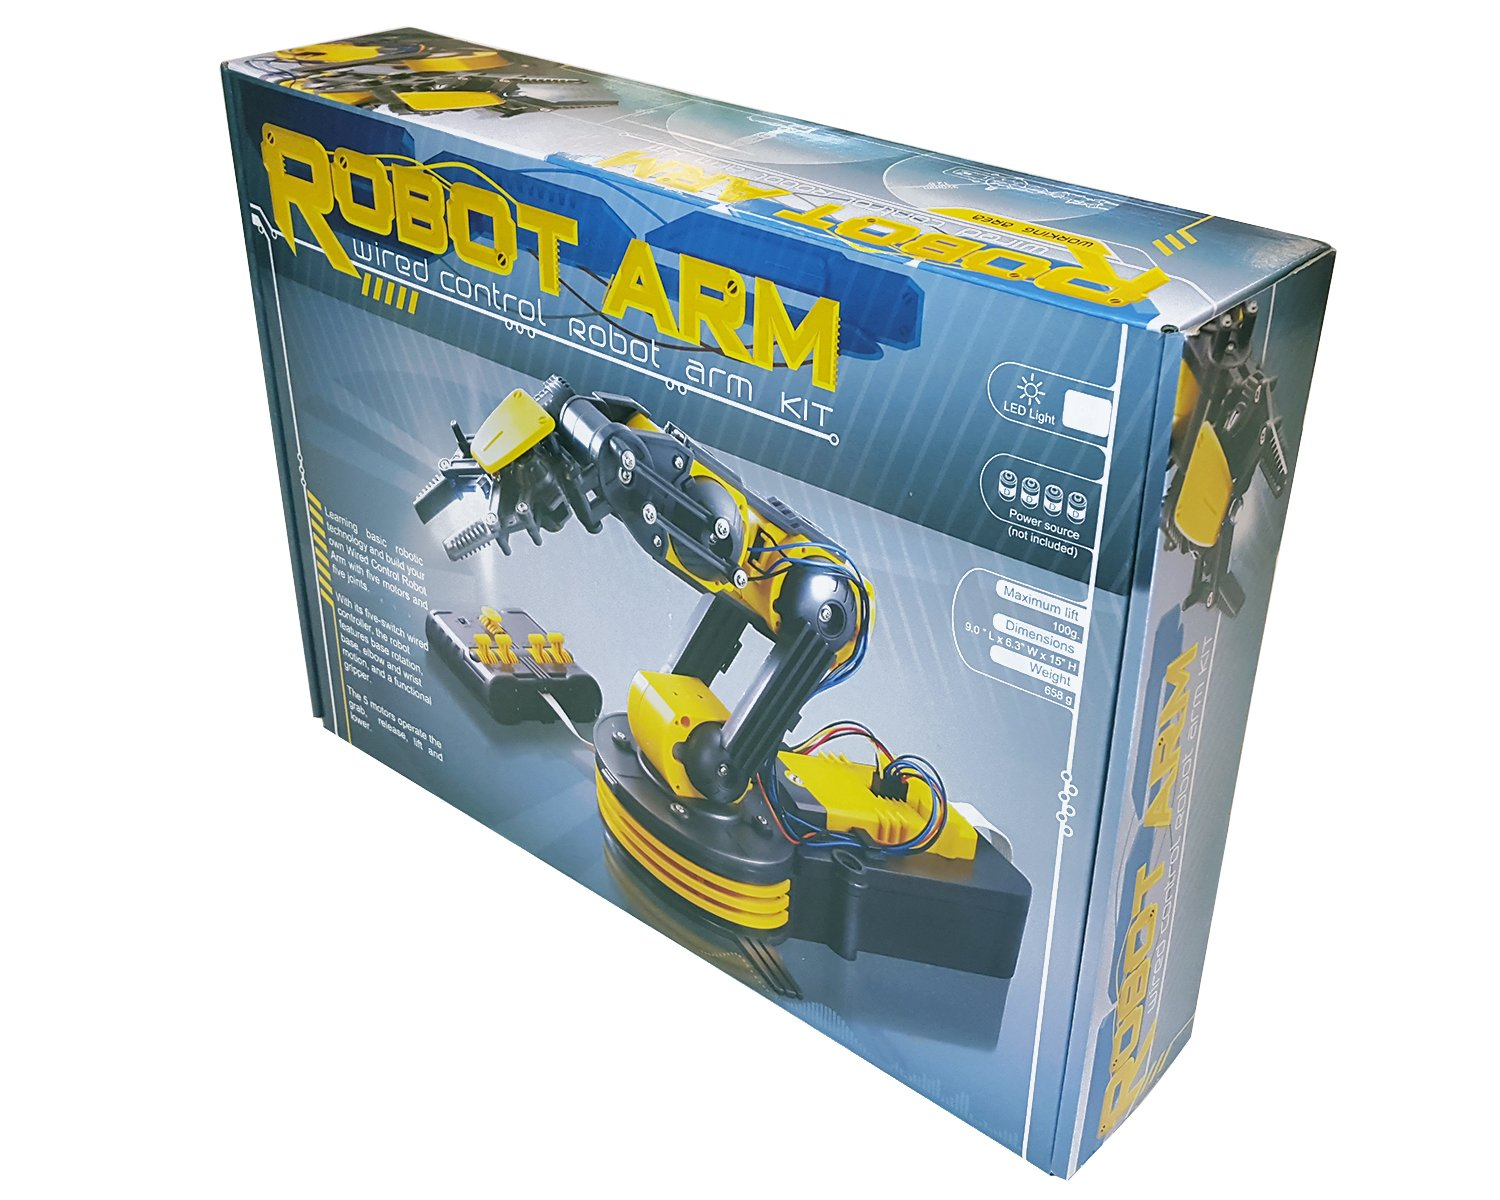 Circuit-Test Robotic Arm Edge Kit with Wired Controller - Learn Robotics Educational Kit by Circuit-Test (Image #4)